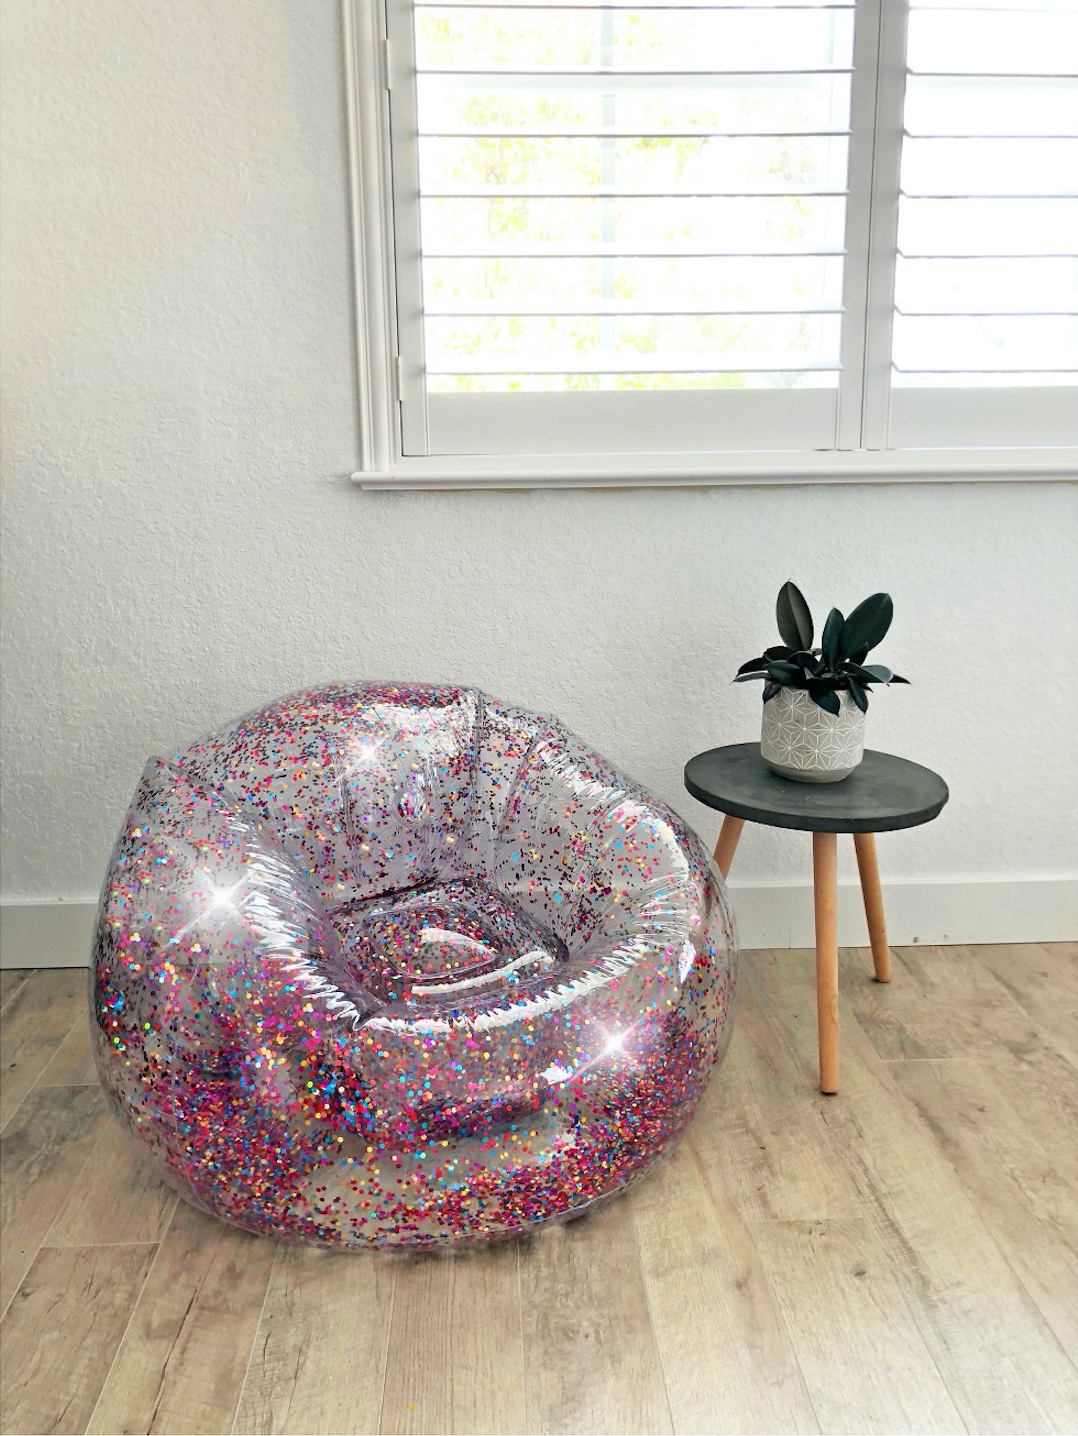 Target Sells Inflatable Furniture Air Candy Inflatable Furniture